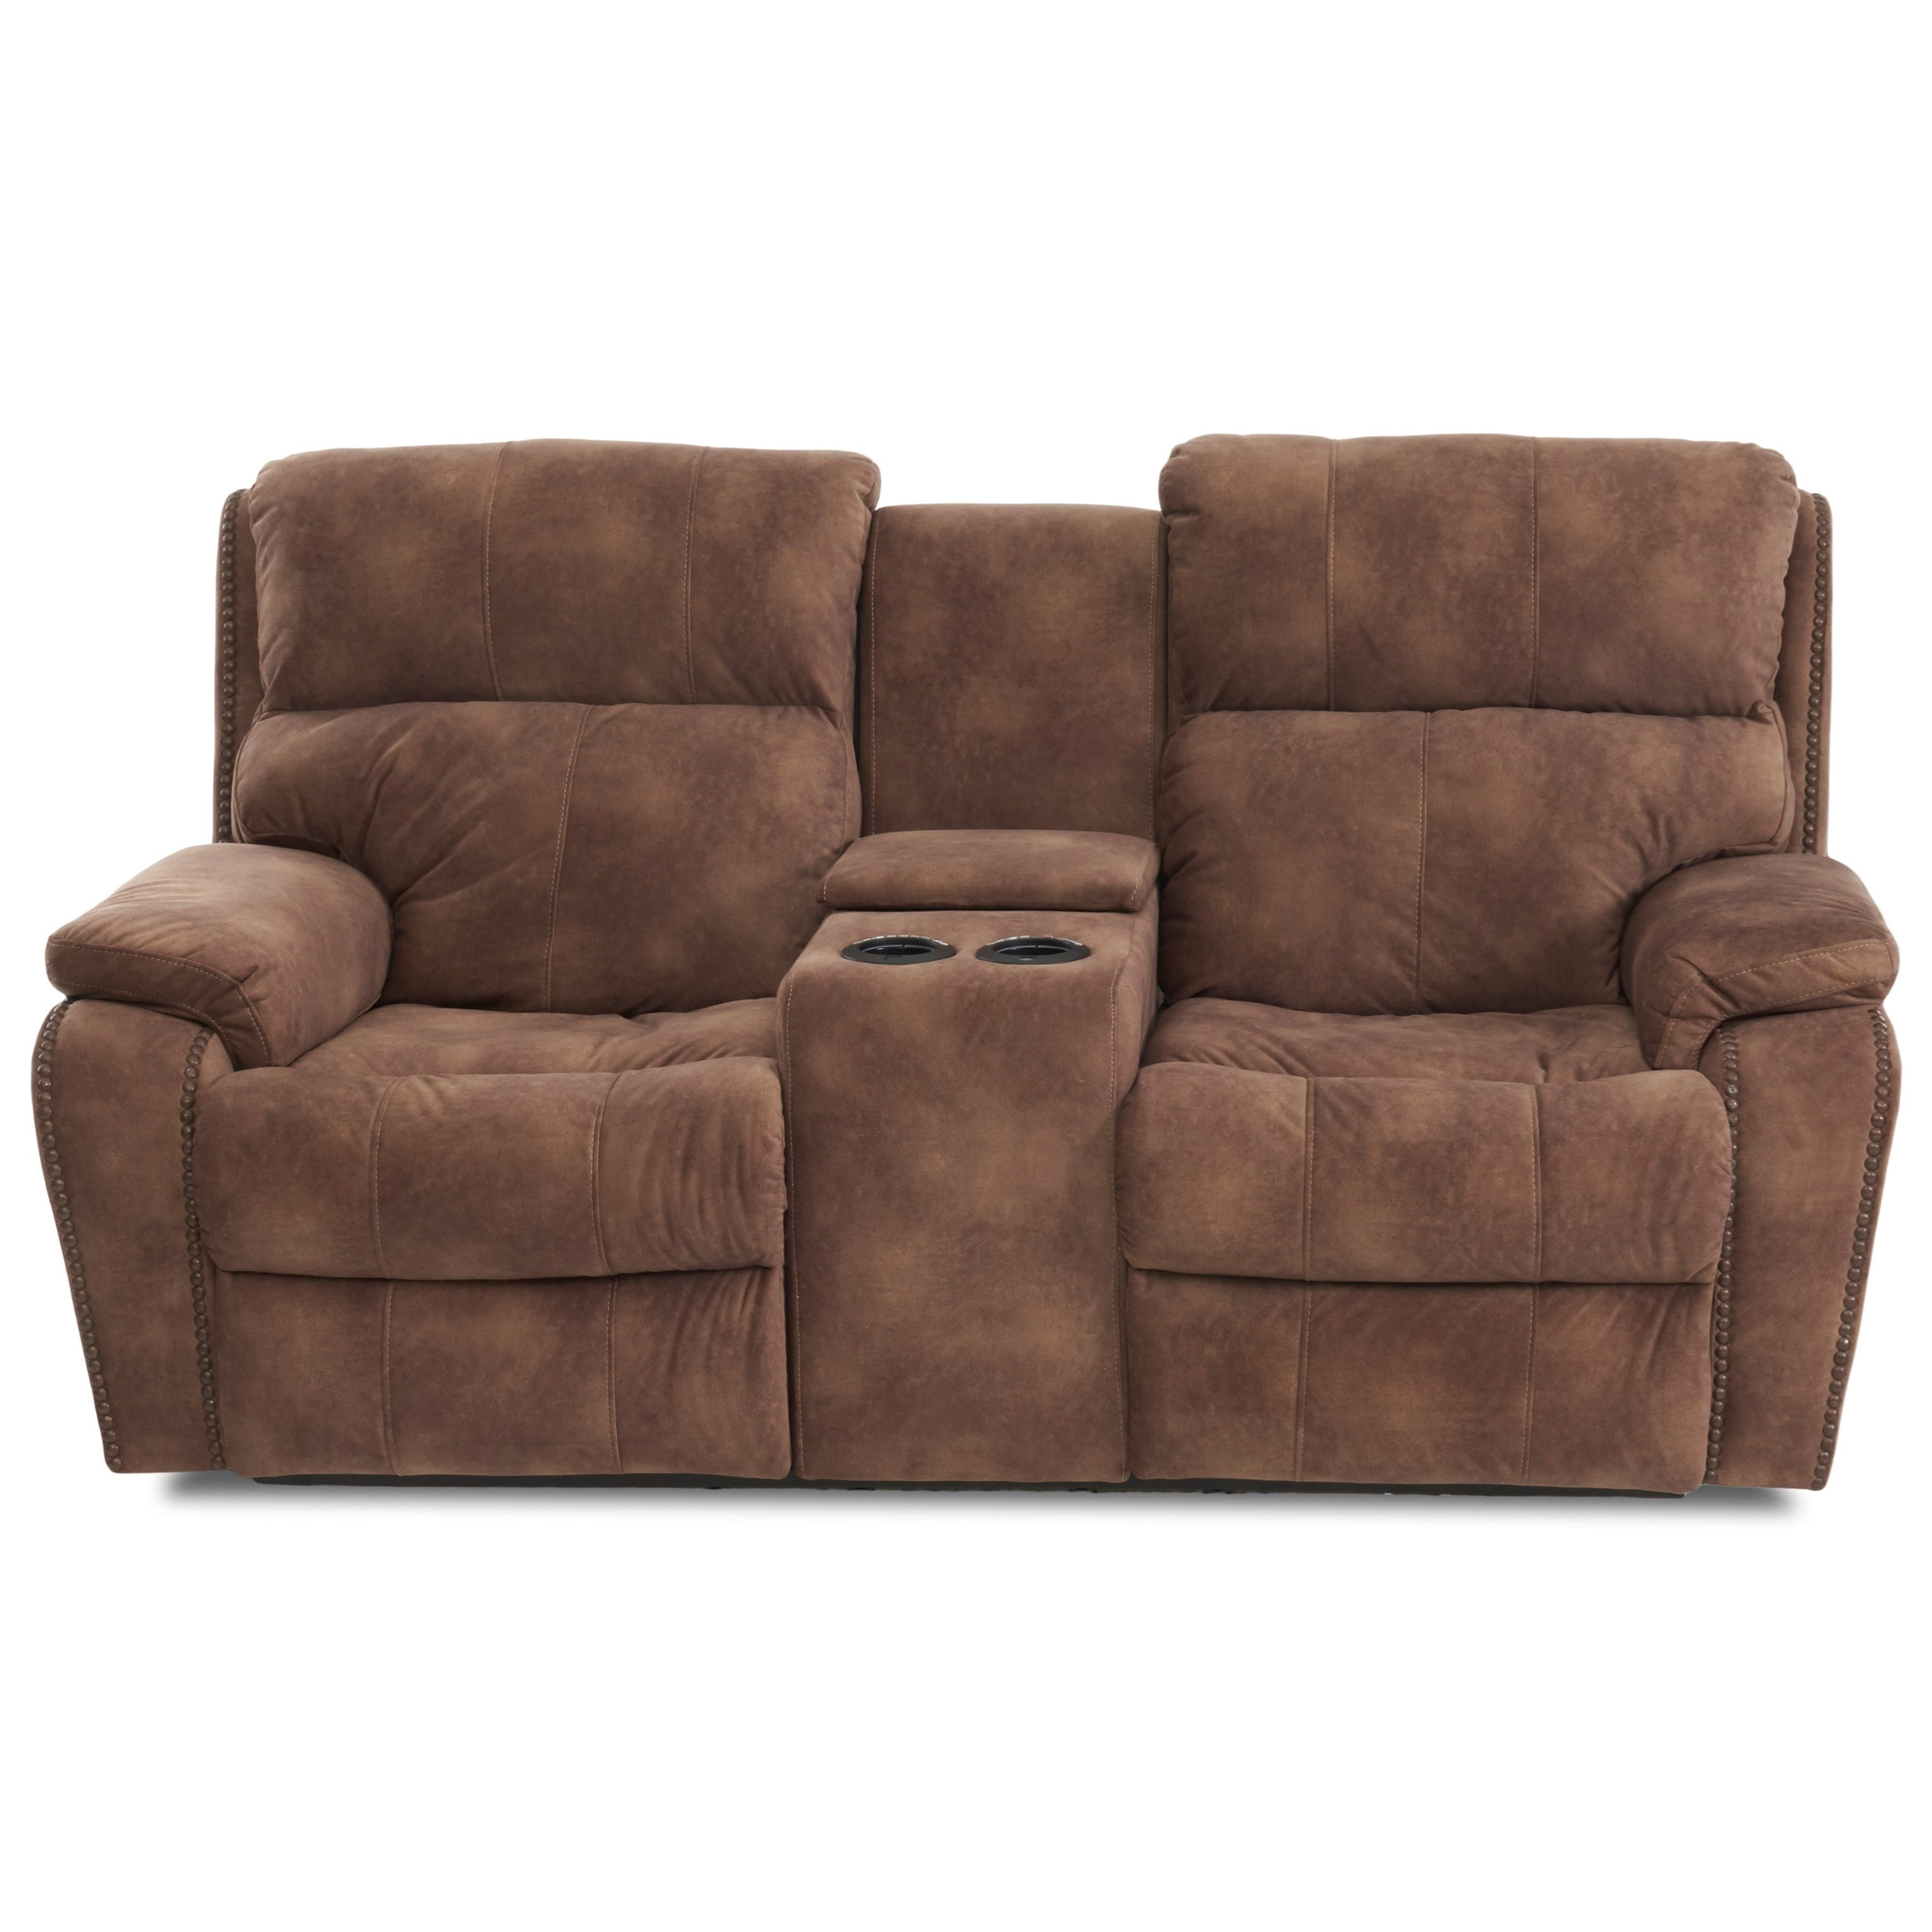 Averett Power Recline LS w/ Console w/Nails w/ Pwr H by Klaussner at Lapeer Furniture & Mattress Center